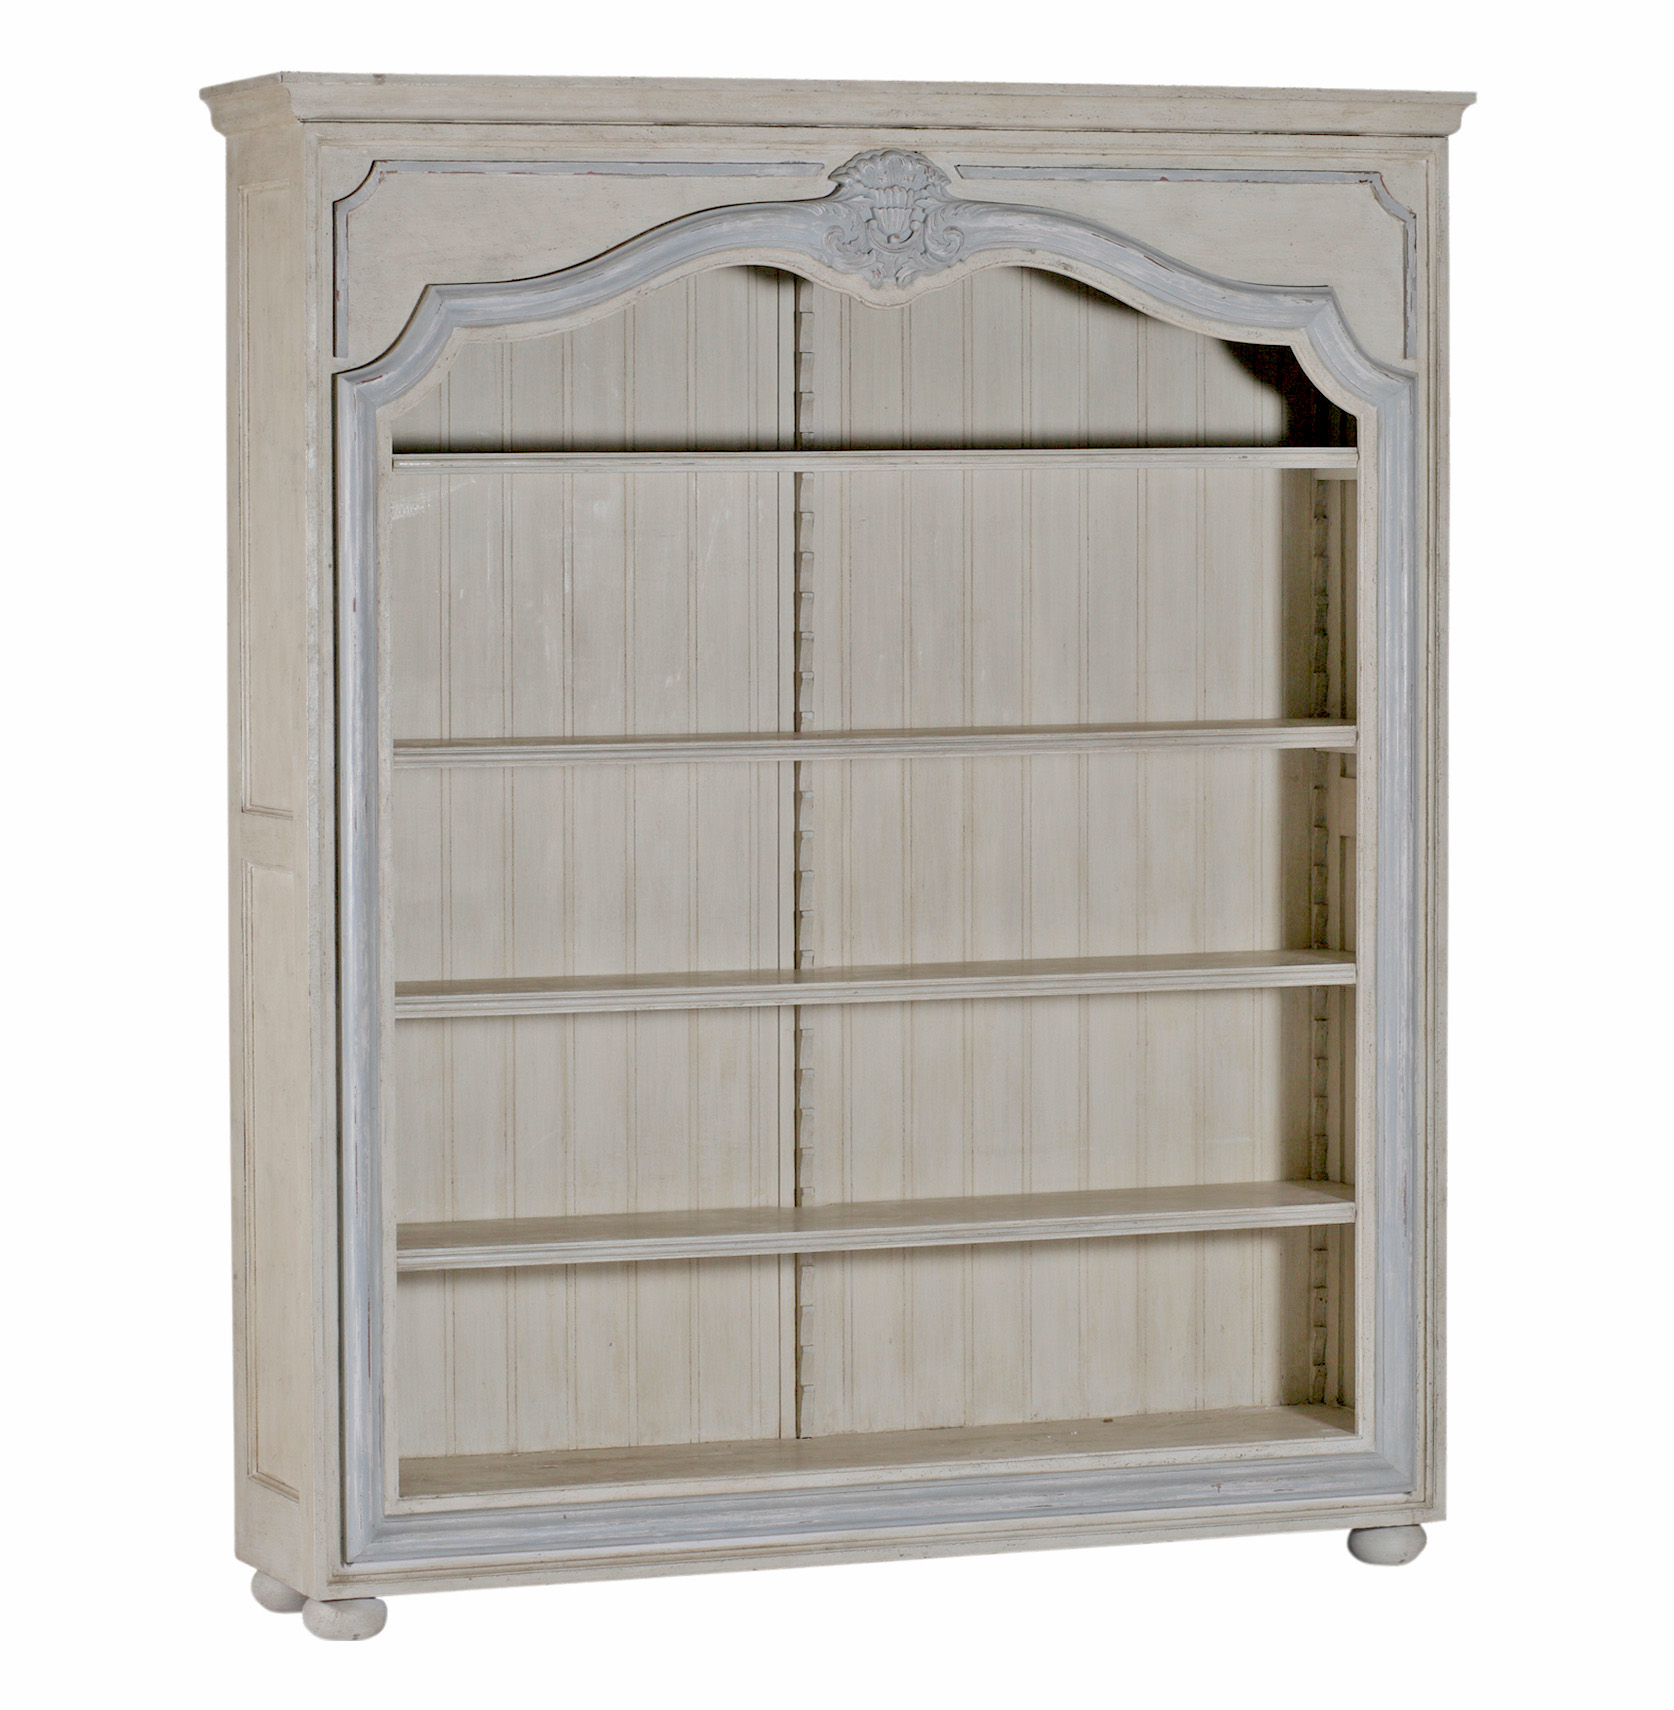 Image of: Antique White Bookcase Ideas